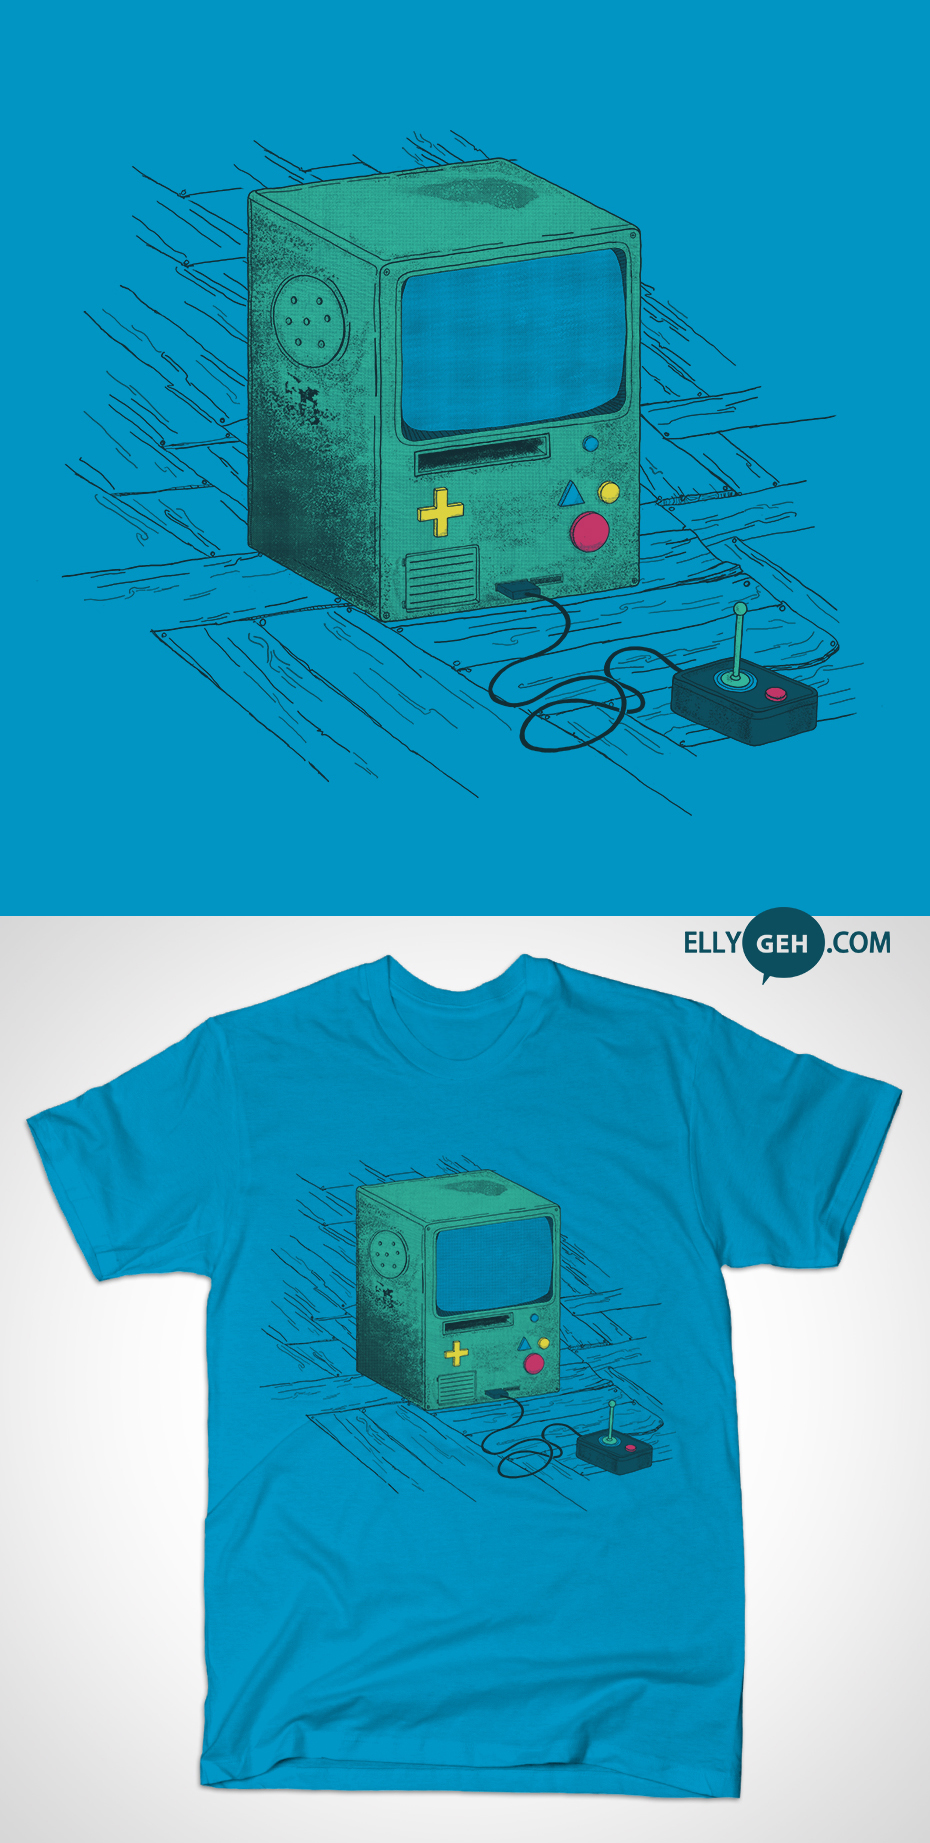 OLD CONSOLE - SHIRT ON TEEPUBLIC! by Ellygeh